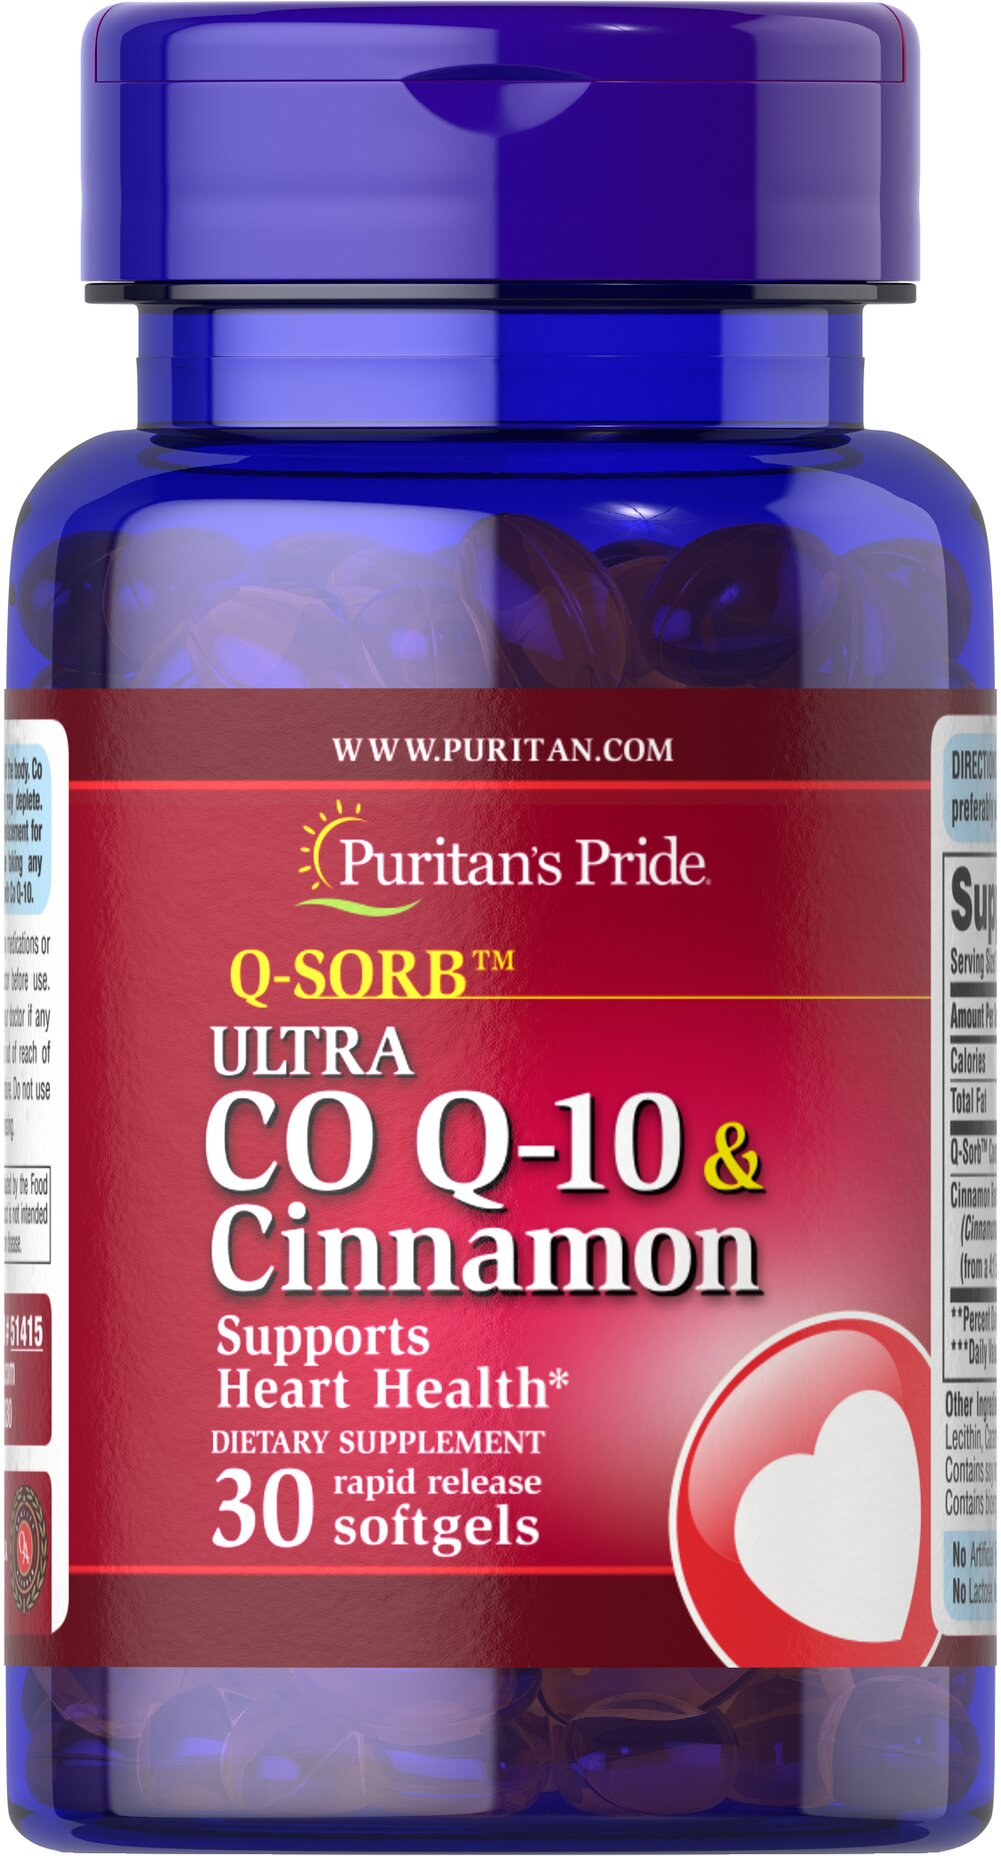 Co Q-10 & Cinnamon <p>What's better than two well-known ingredients for cardiovascular health in one advanced formula?** Cinnamon's positive effects on sugar metabolism can help support heart and circulatory health.** Co Q-10's capabilities contribute to a healthy heart and cardiovascular system.</p>  30 Rapid Release Softgels  $26.79